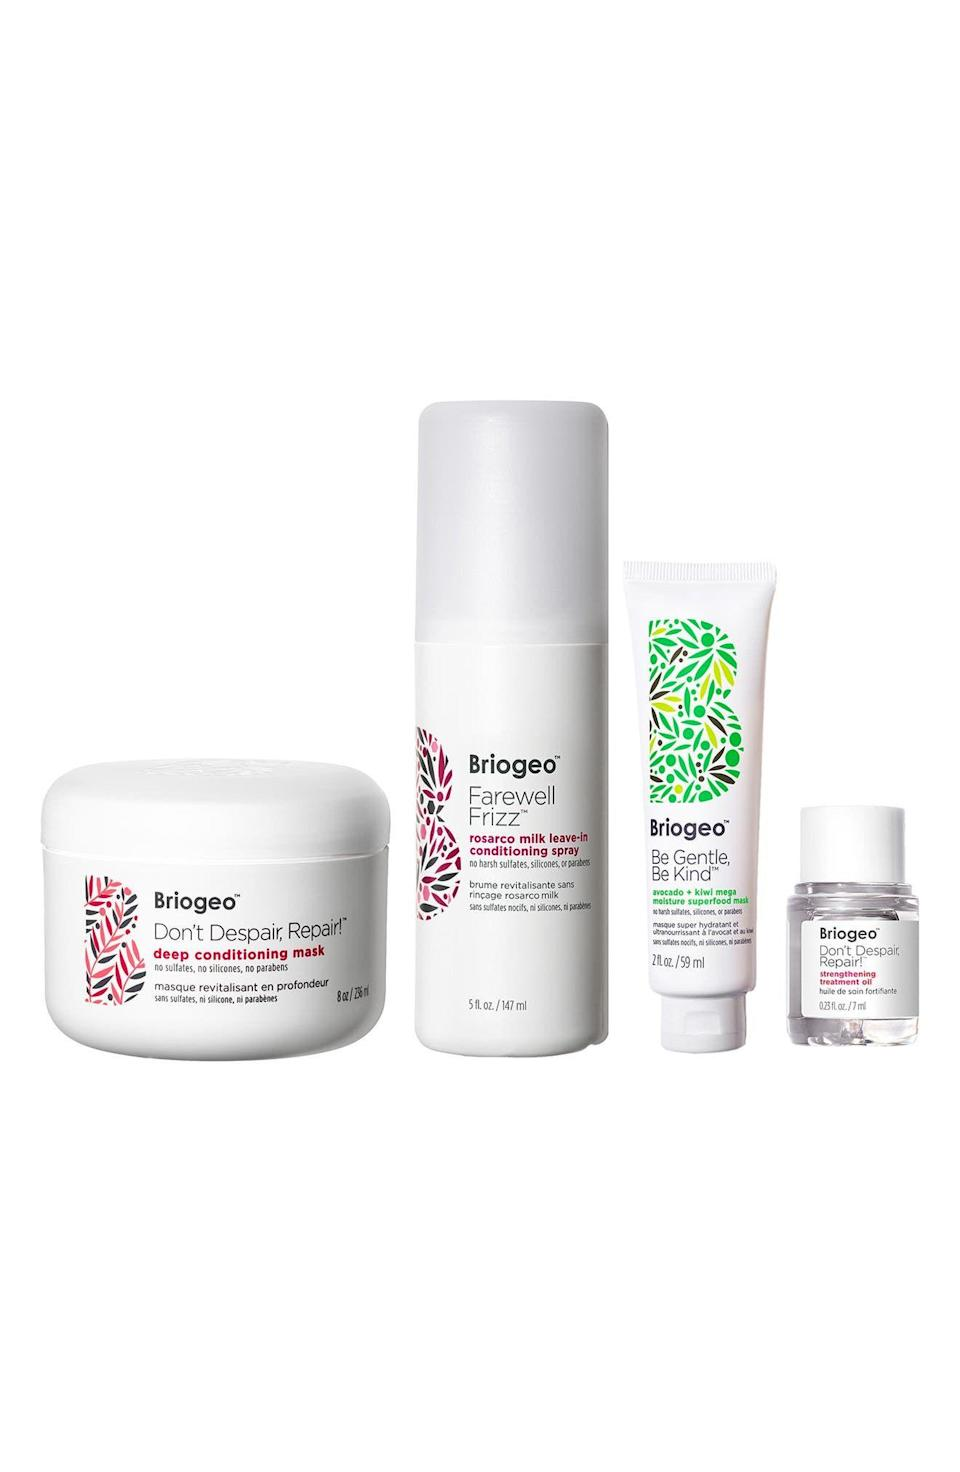 """<p><strong>Briogeo </strong></p><p>nordstrom.com</p><p><a href=""""https://go.redirectingat.com?id=74968X1596630&url=https%3A%2F%2Fwww.nordstrom.com%2Fs%2Fbriogeo-healthy-hair-wonders-set-75-value%2F5912861&sref=https%3A%2F%2Fwww.harpersbazaar.com%2Fbeauty%2Fg36991550%2Fnordstrom-anniversary-sale-beauty-deals%2F"""" rel=""""nofollow noopener"""" target=""""_blank"""" data-ylk=""""slk:Shop Now"""" class=""""link rapid-noclick-resp"""">Shop Now</a></p><p><strong>Sale: $49</strong></p><p><strong>Value: $75</strong> </p><p>Briogeo's Healthy Hair Wonders set includes the award-winning Don't Despair, Repair mask, which has been clinically proven to reduce hair breakage in just three showers. The set also includes Briogeo's Farwell Frizz, which helps make hair look and feel softer; a travel-sized Scalp Revival that detoxifies and reduces build-up and flakiness; and a travel-sized Avocado + Kiwi Mega Moisture Superfood Hair Mask to bring dry hair back to life.</p>"""